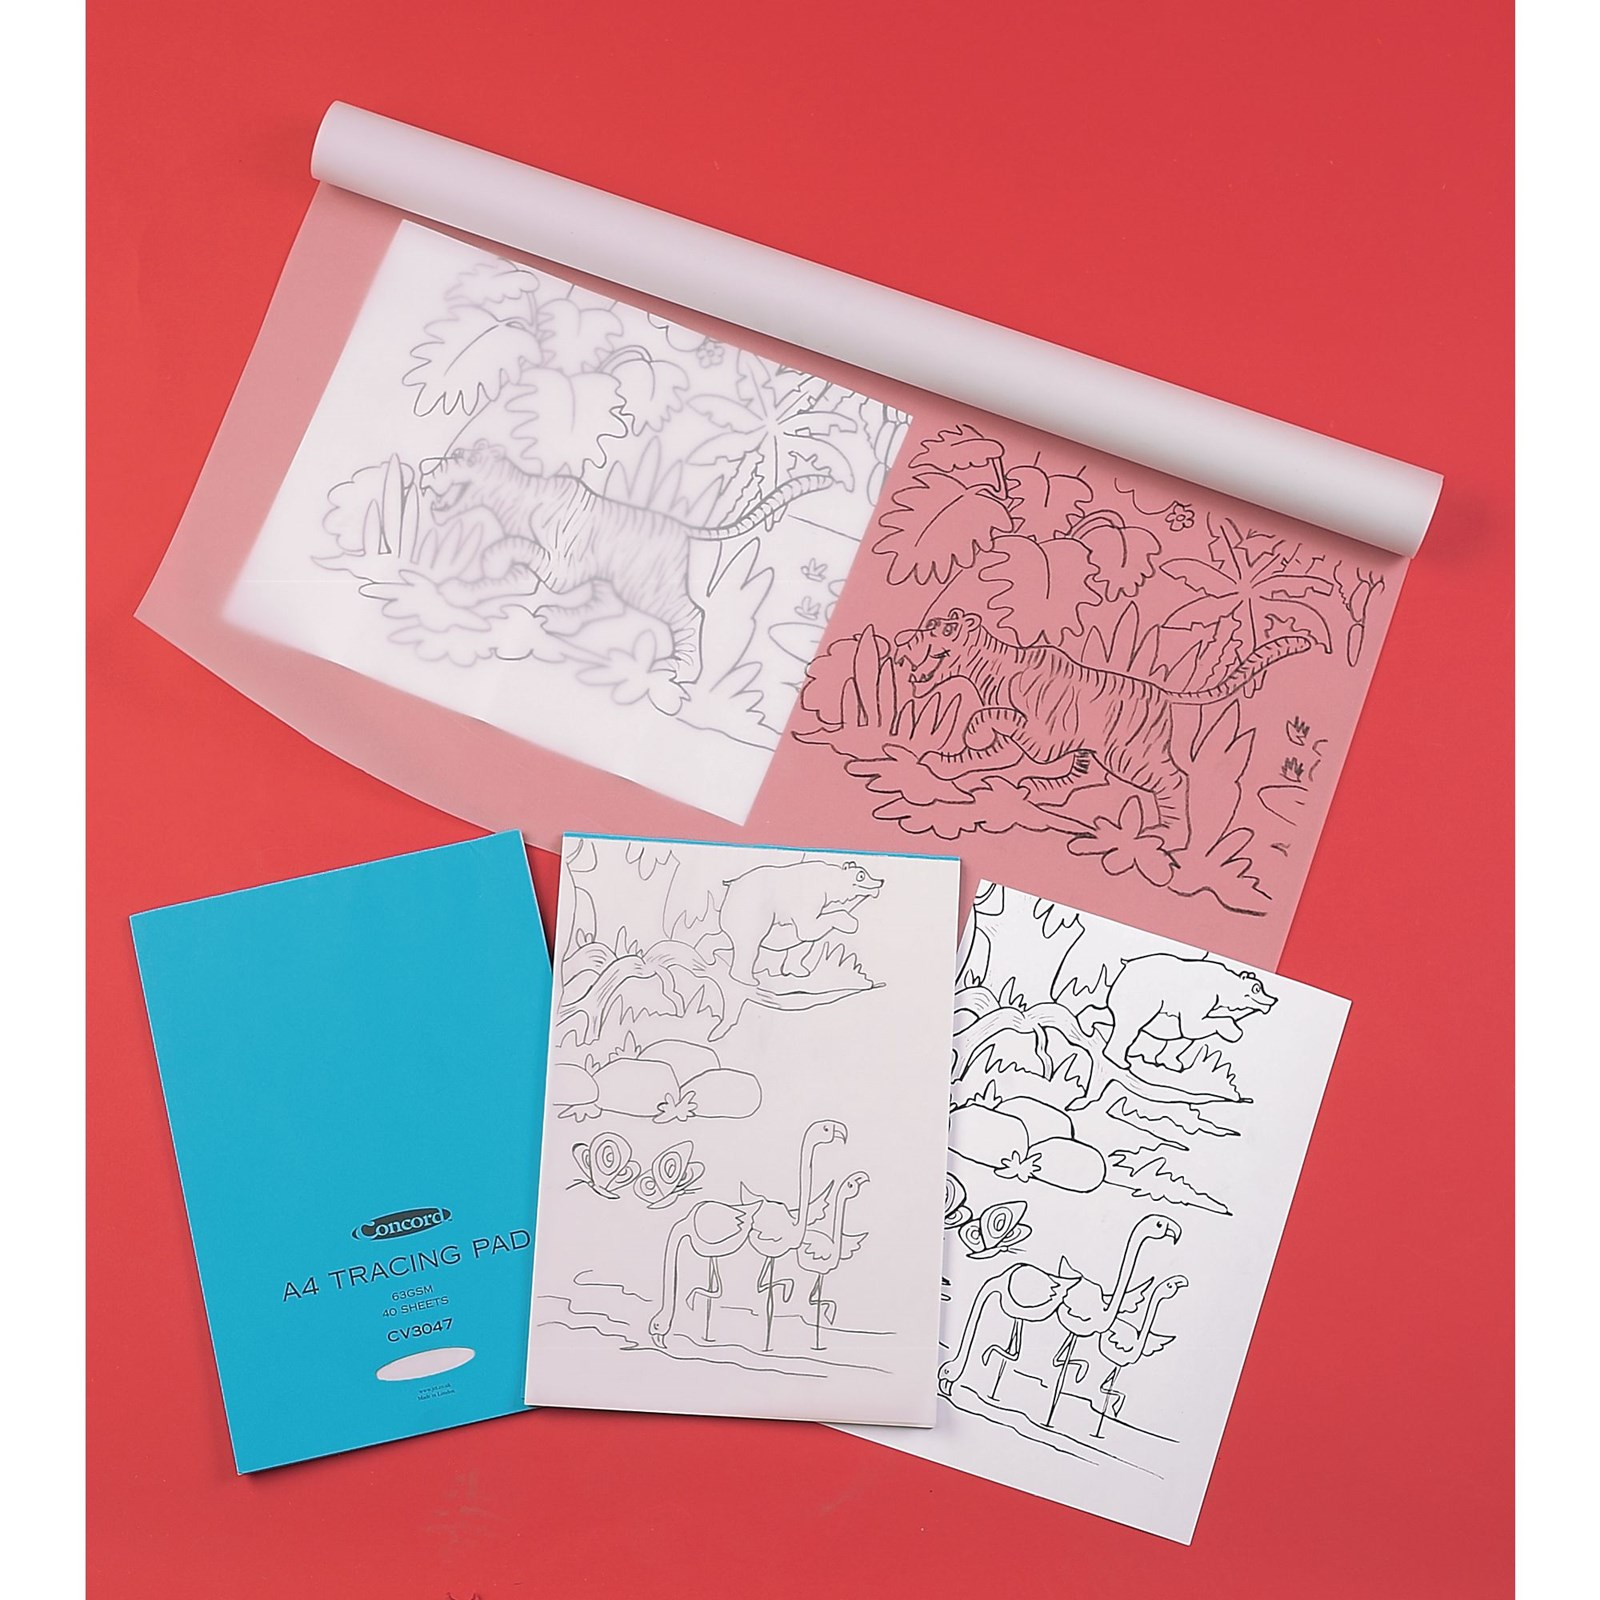 Tracing Paper Pads A3 Gls Educational Supplies